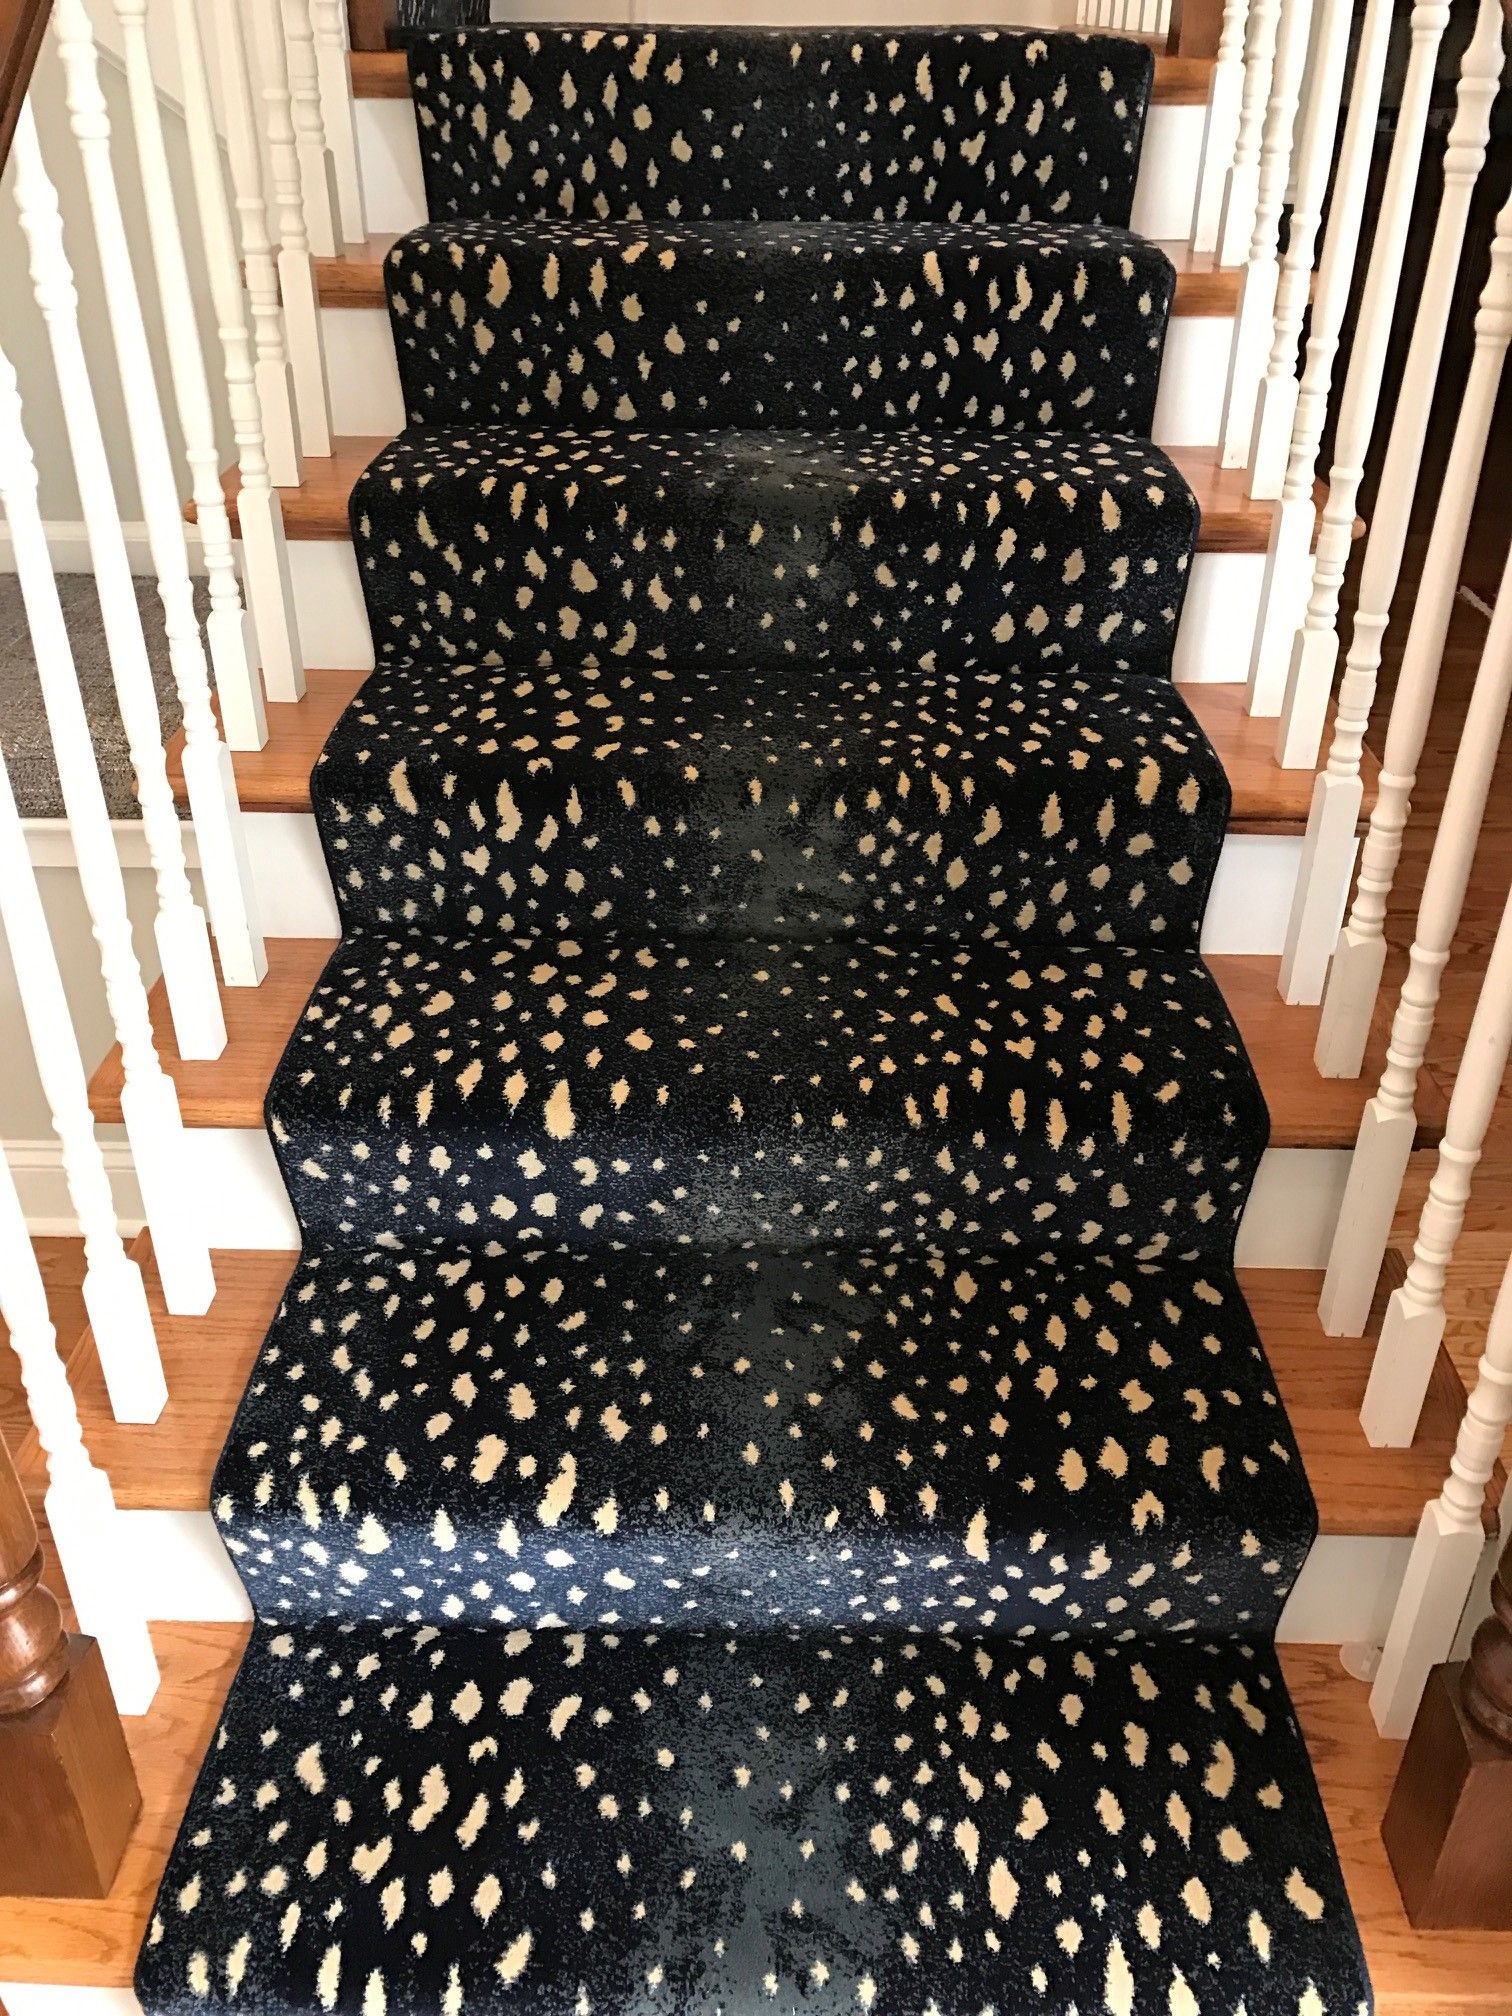 View Stair Carpet From Lewis Floor U0026 Home. From Traditional To Transitional  And Modern, We Have Stair Runners And Carpet For Every Lifestyle And Room.